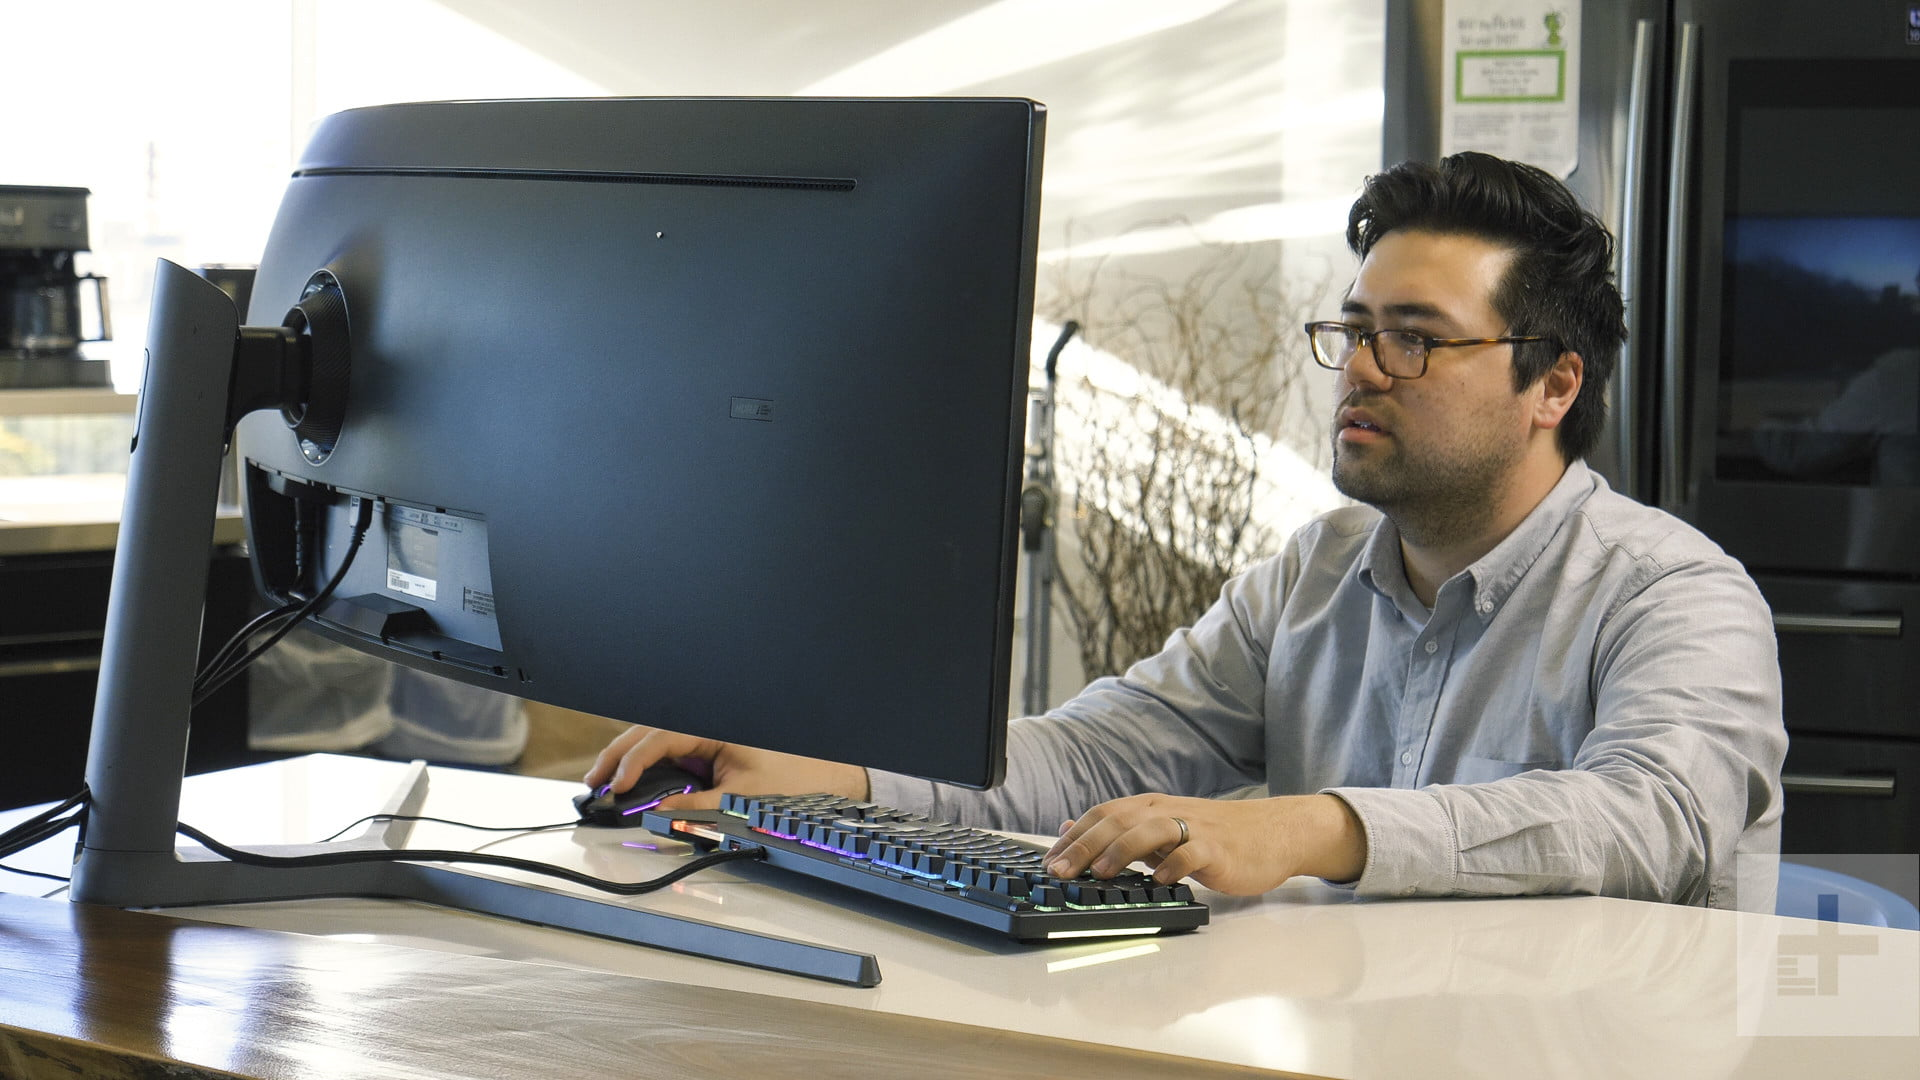 Samsung Chg90 Ultrawide Gaming Monitor Review Digital Trends Labelled Photo Of A Computer Showing The Stood On